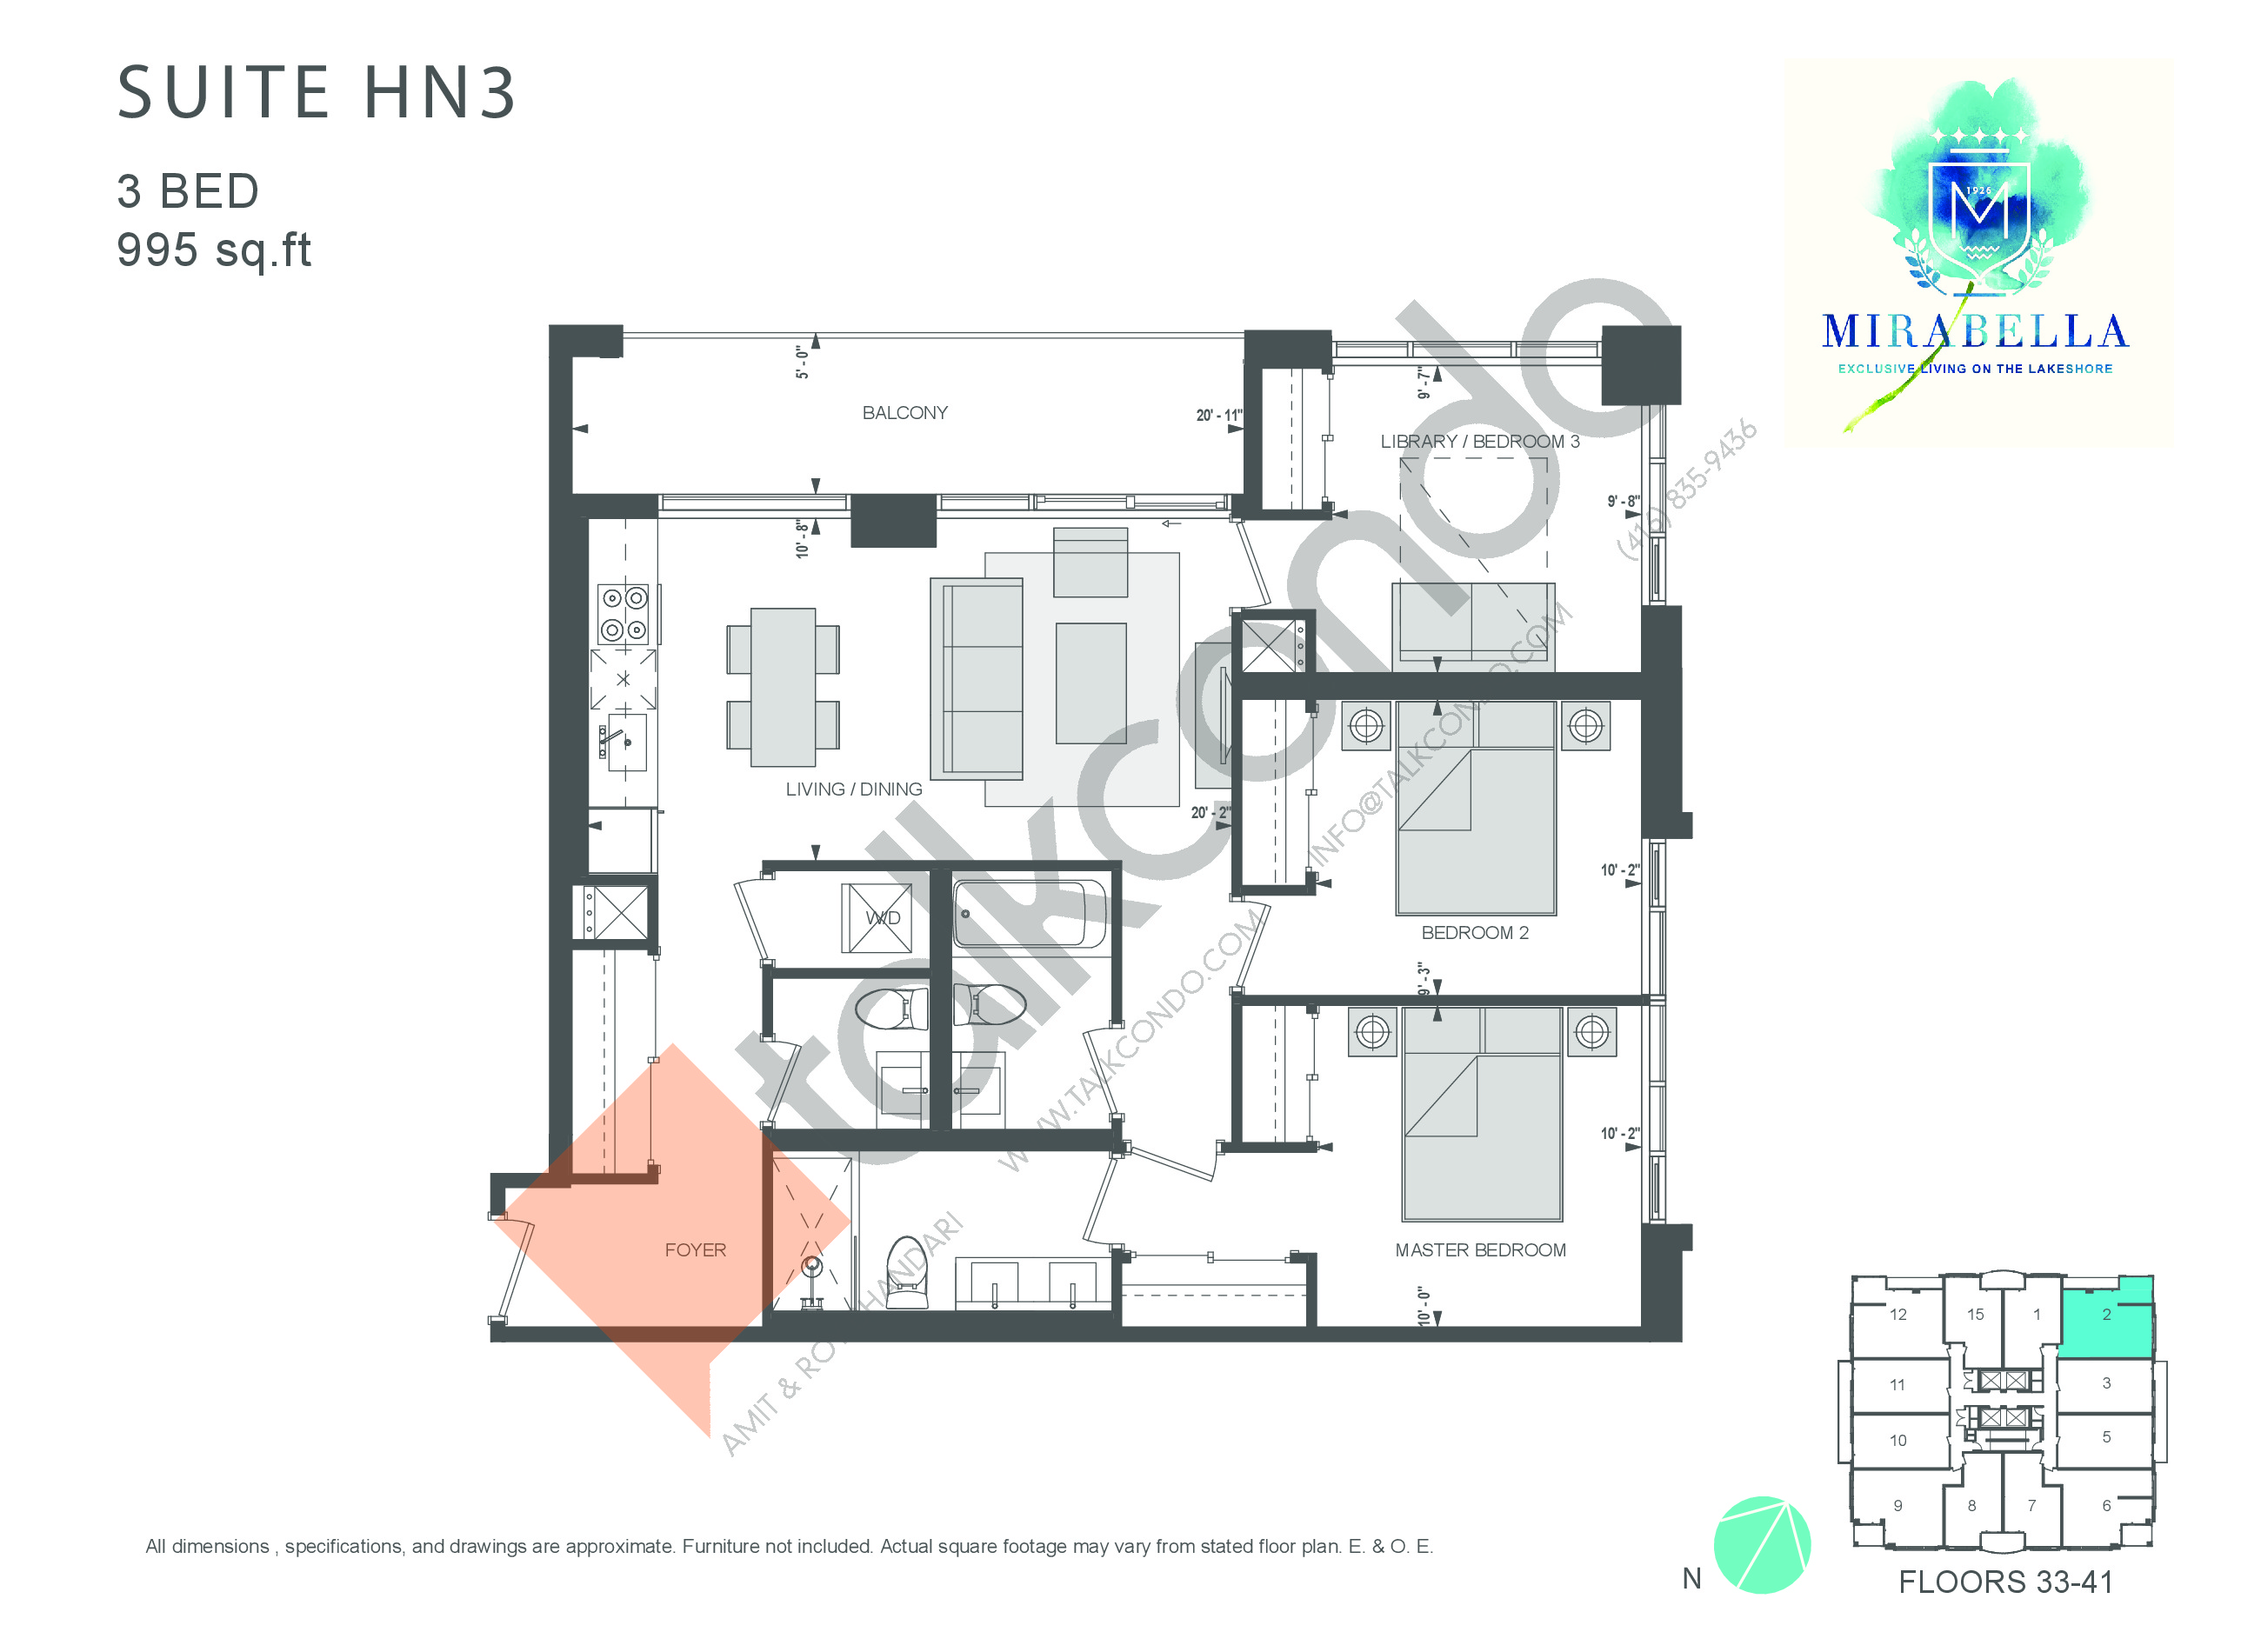 Suite HN3 Floor Plan at Mirabella Luxury Condos East Tower - 995 sq.ft